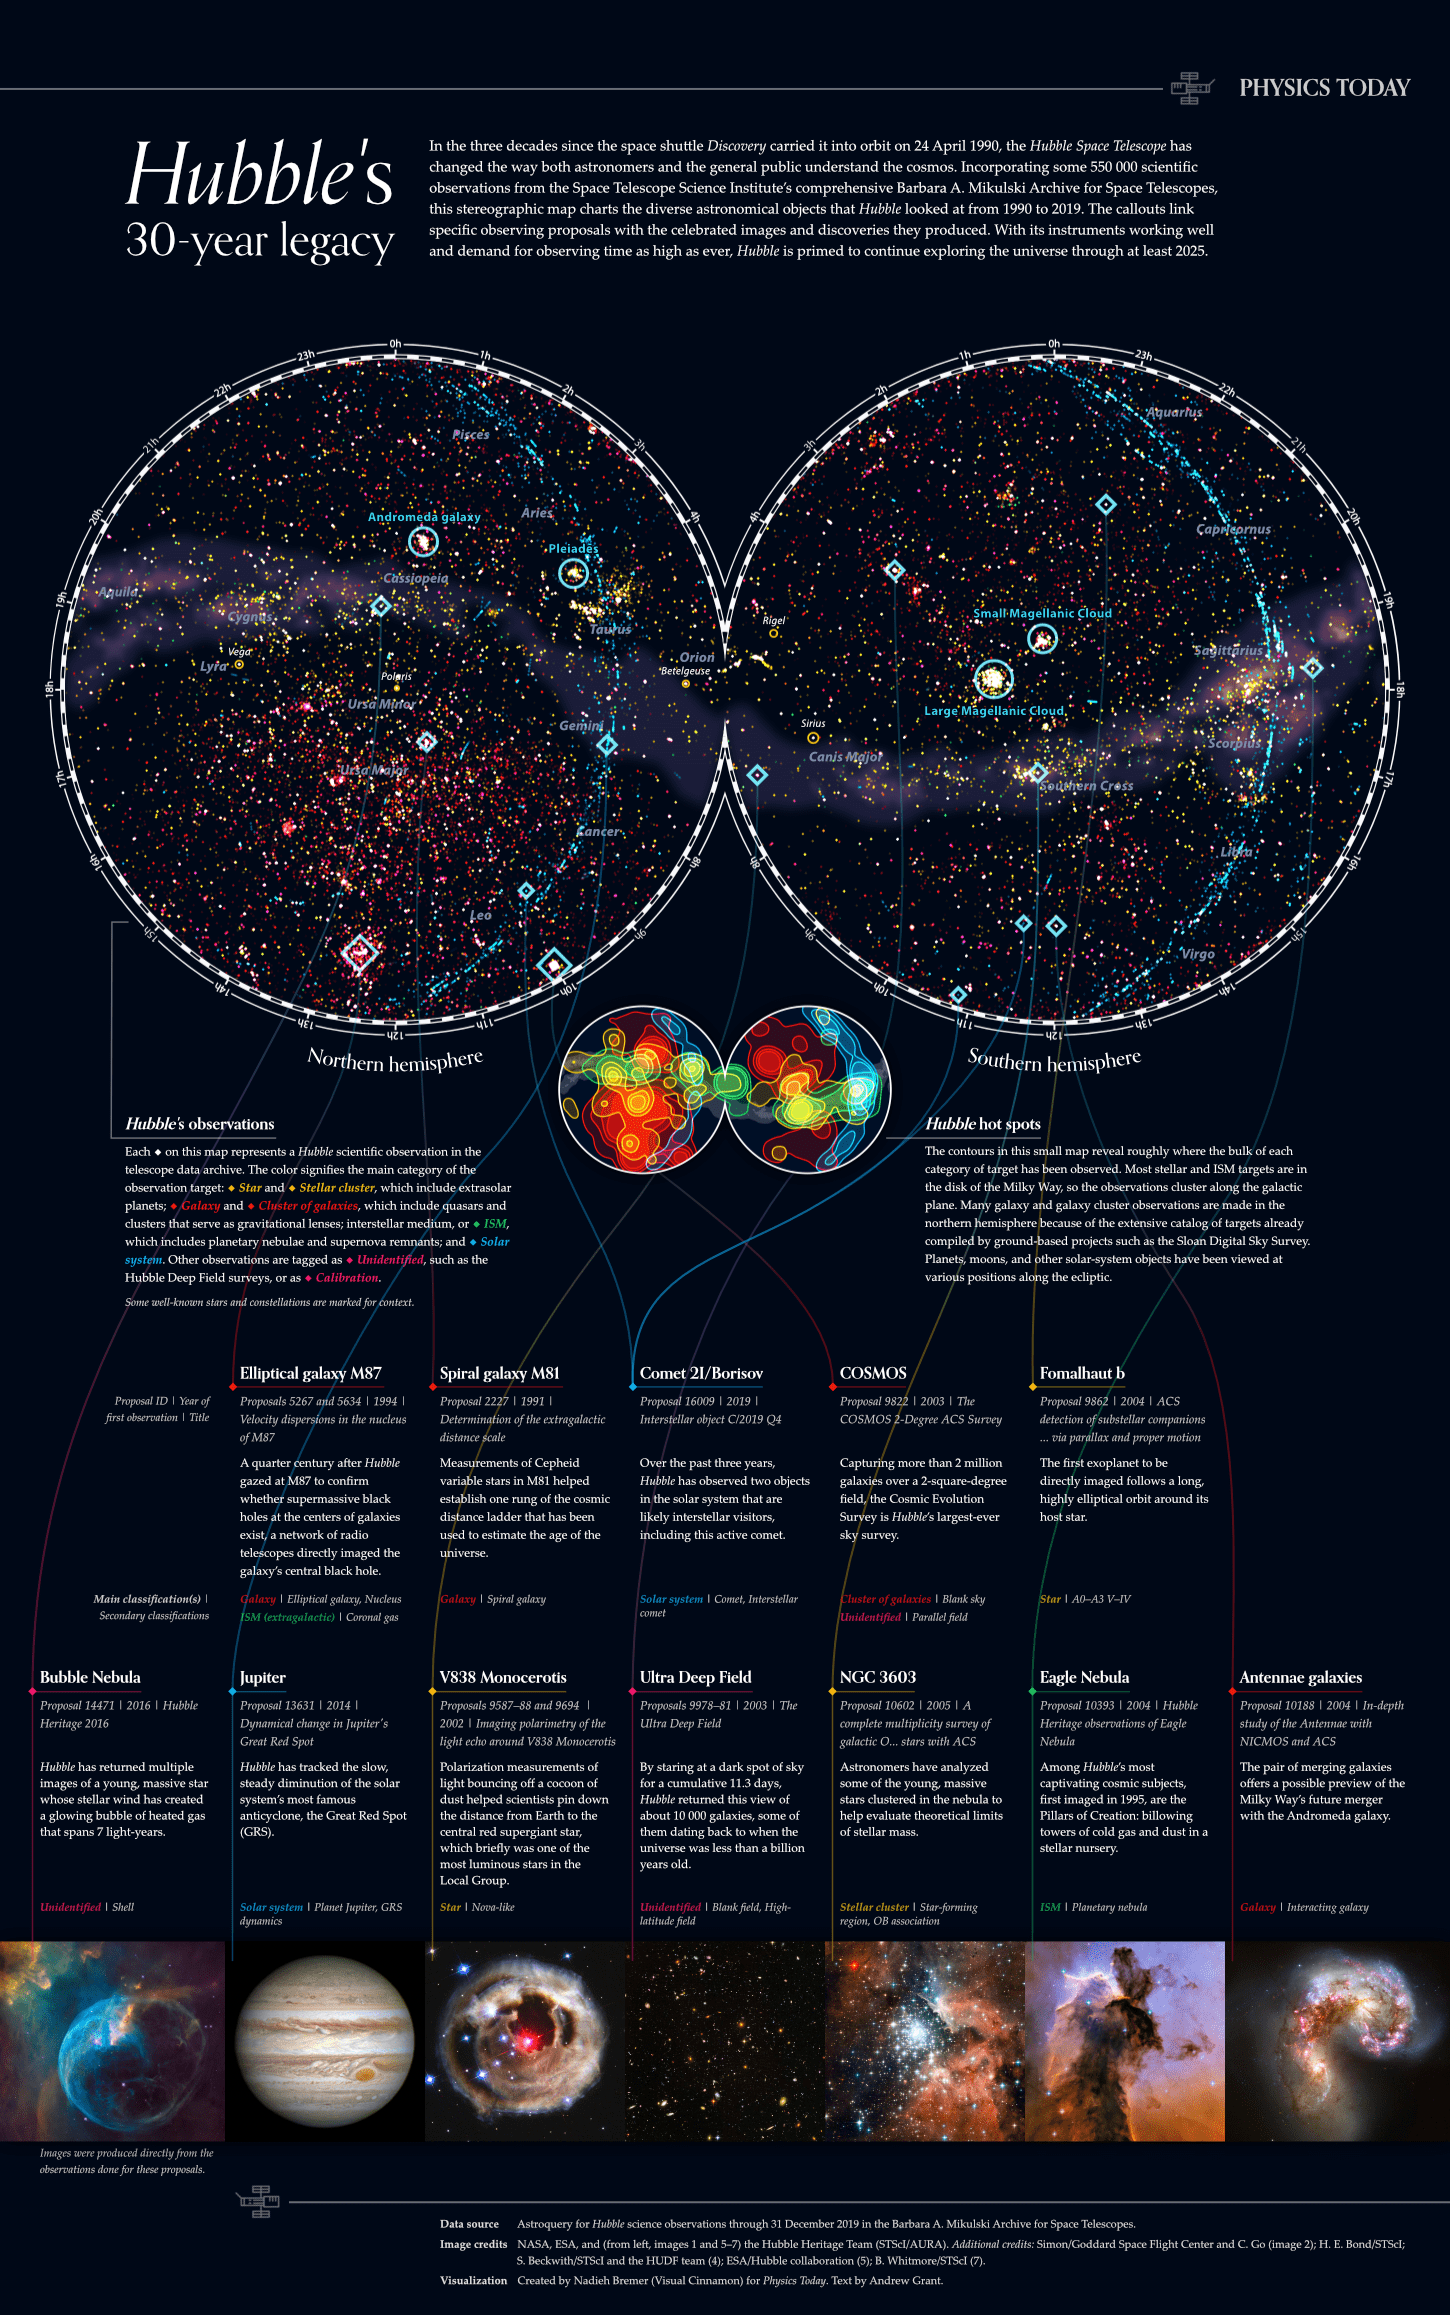 The final poster showing more than 550k observations done by the HST across the sky